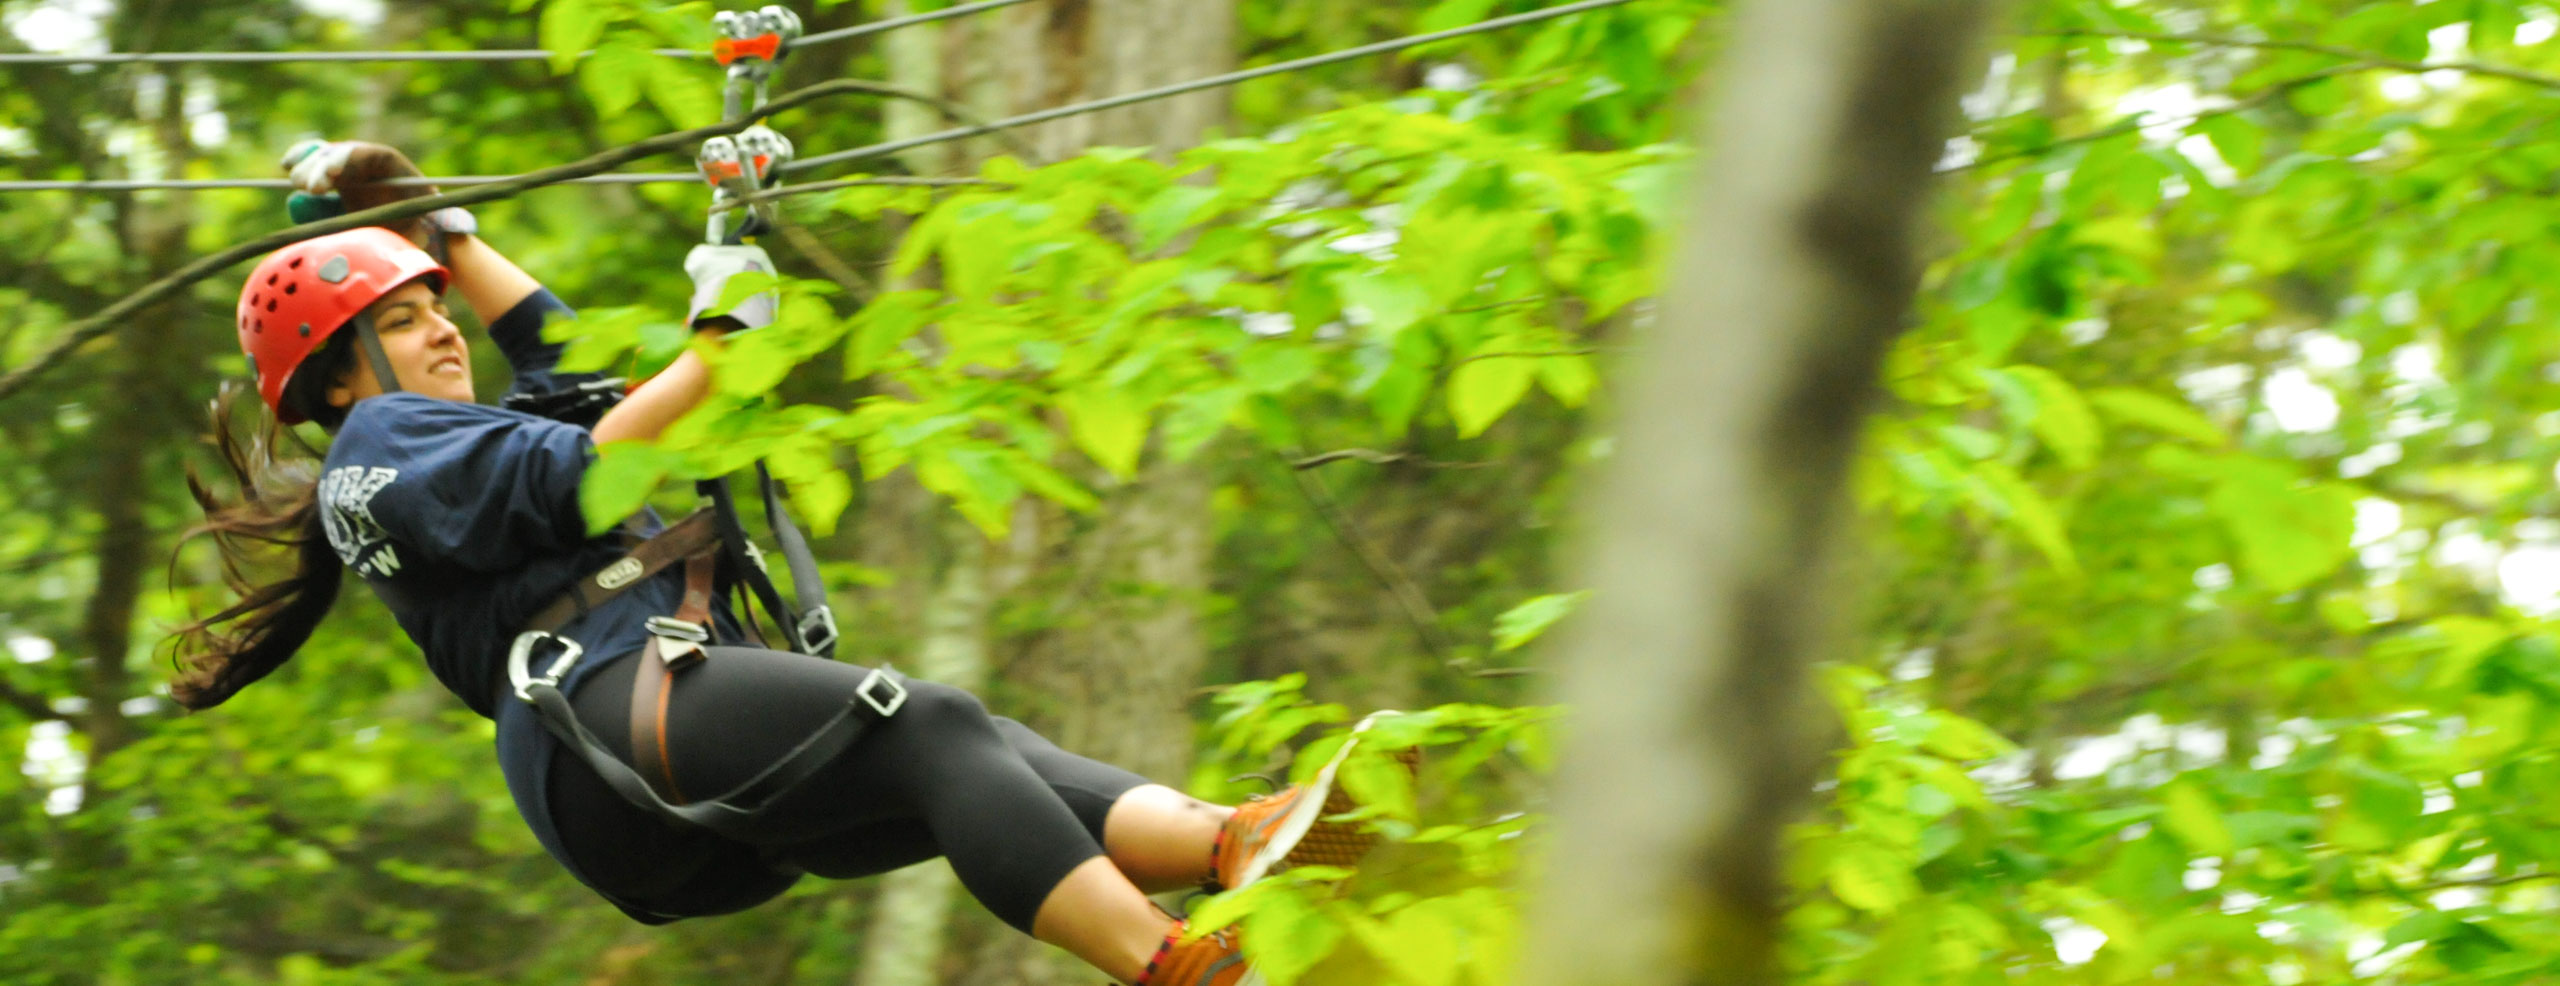 Woman zip lining through the trees